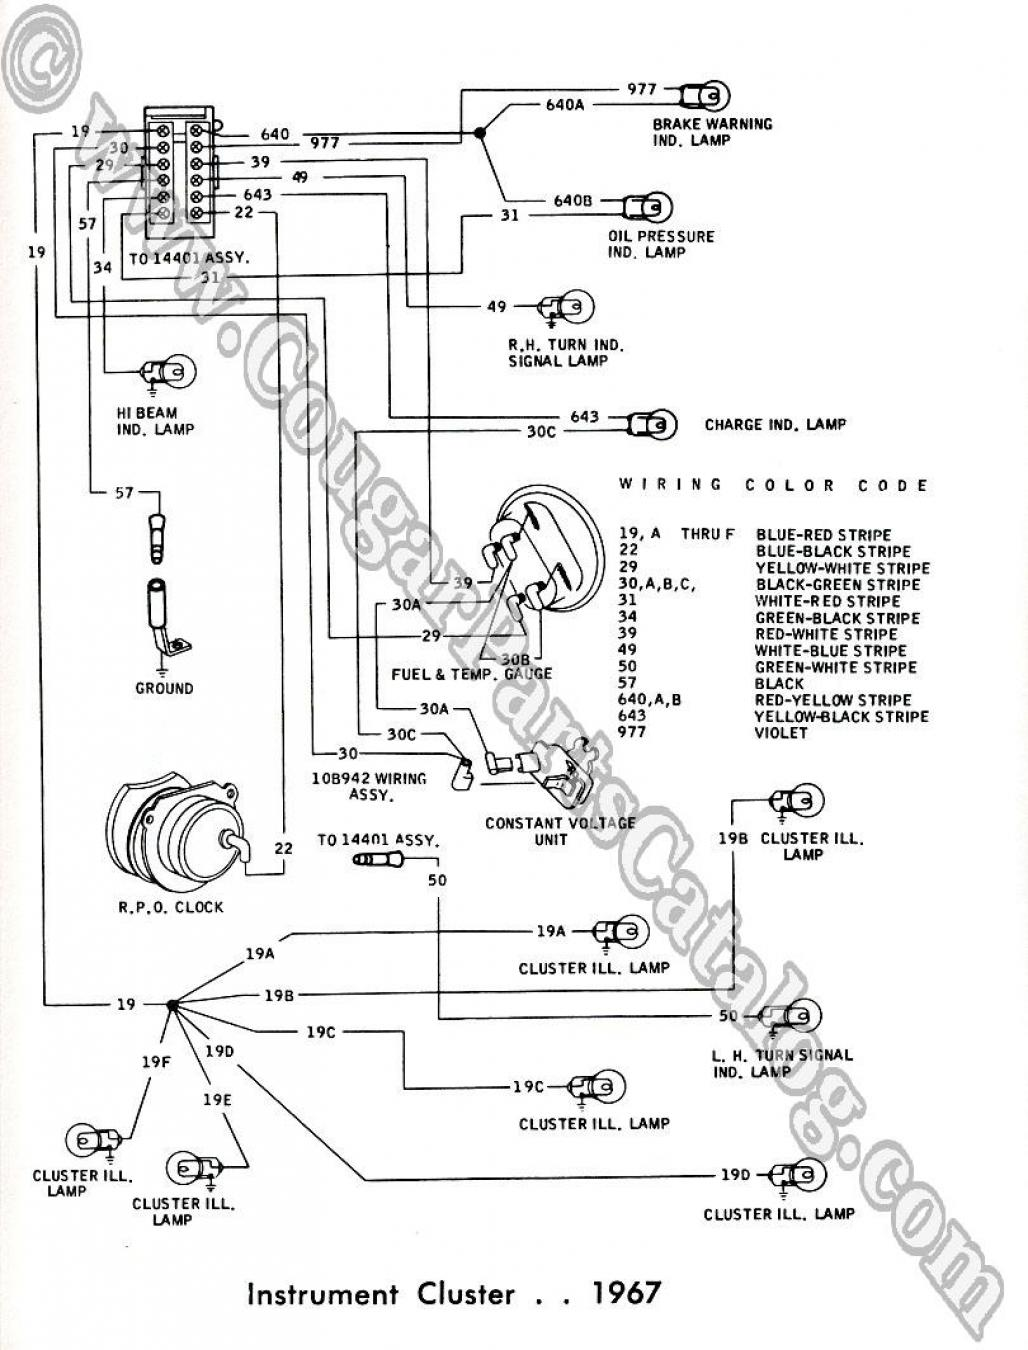 1967 Mercury Cougar Wire Diagram, 1967, Free Engine Image